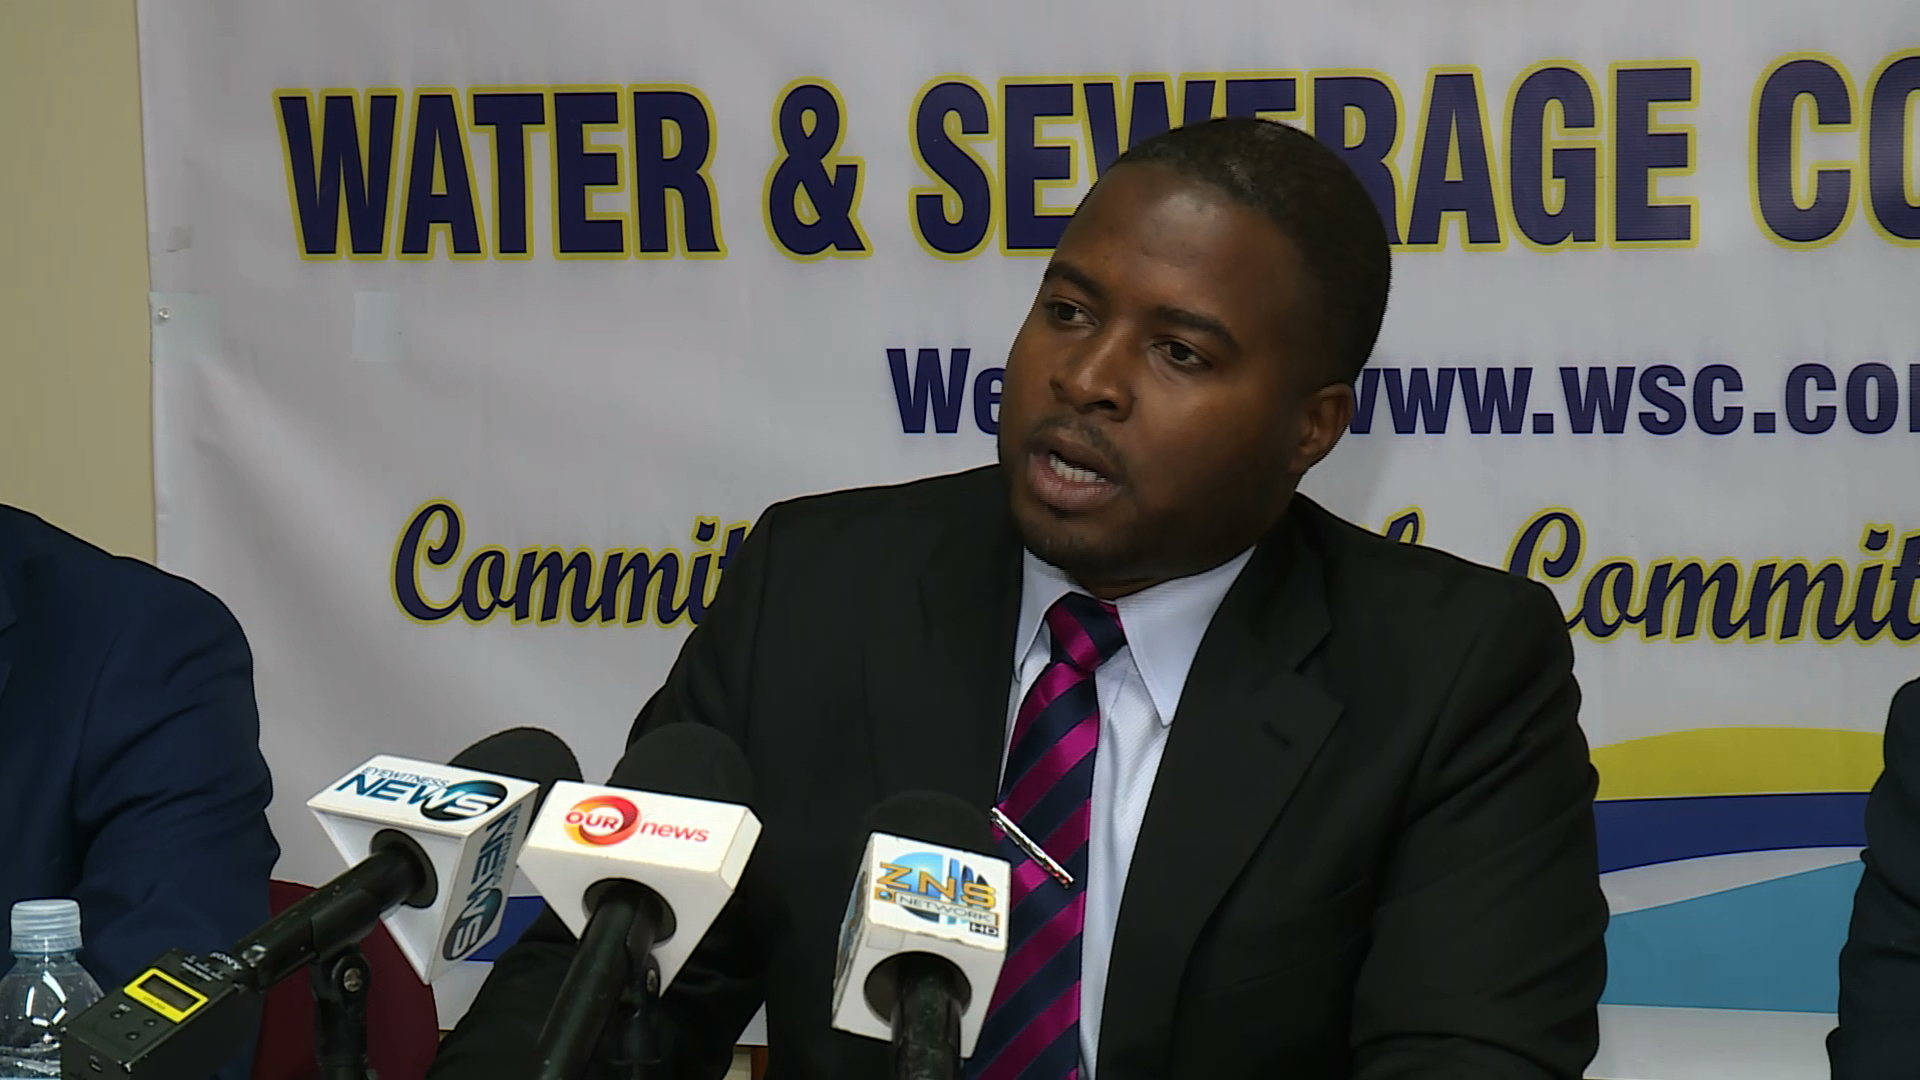 Sabotage – Water service cut to majority of New Providence